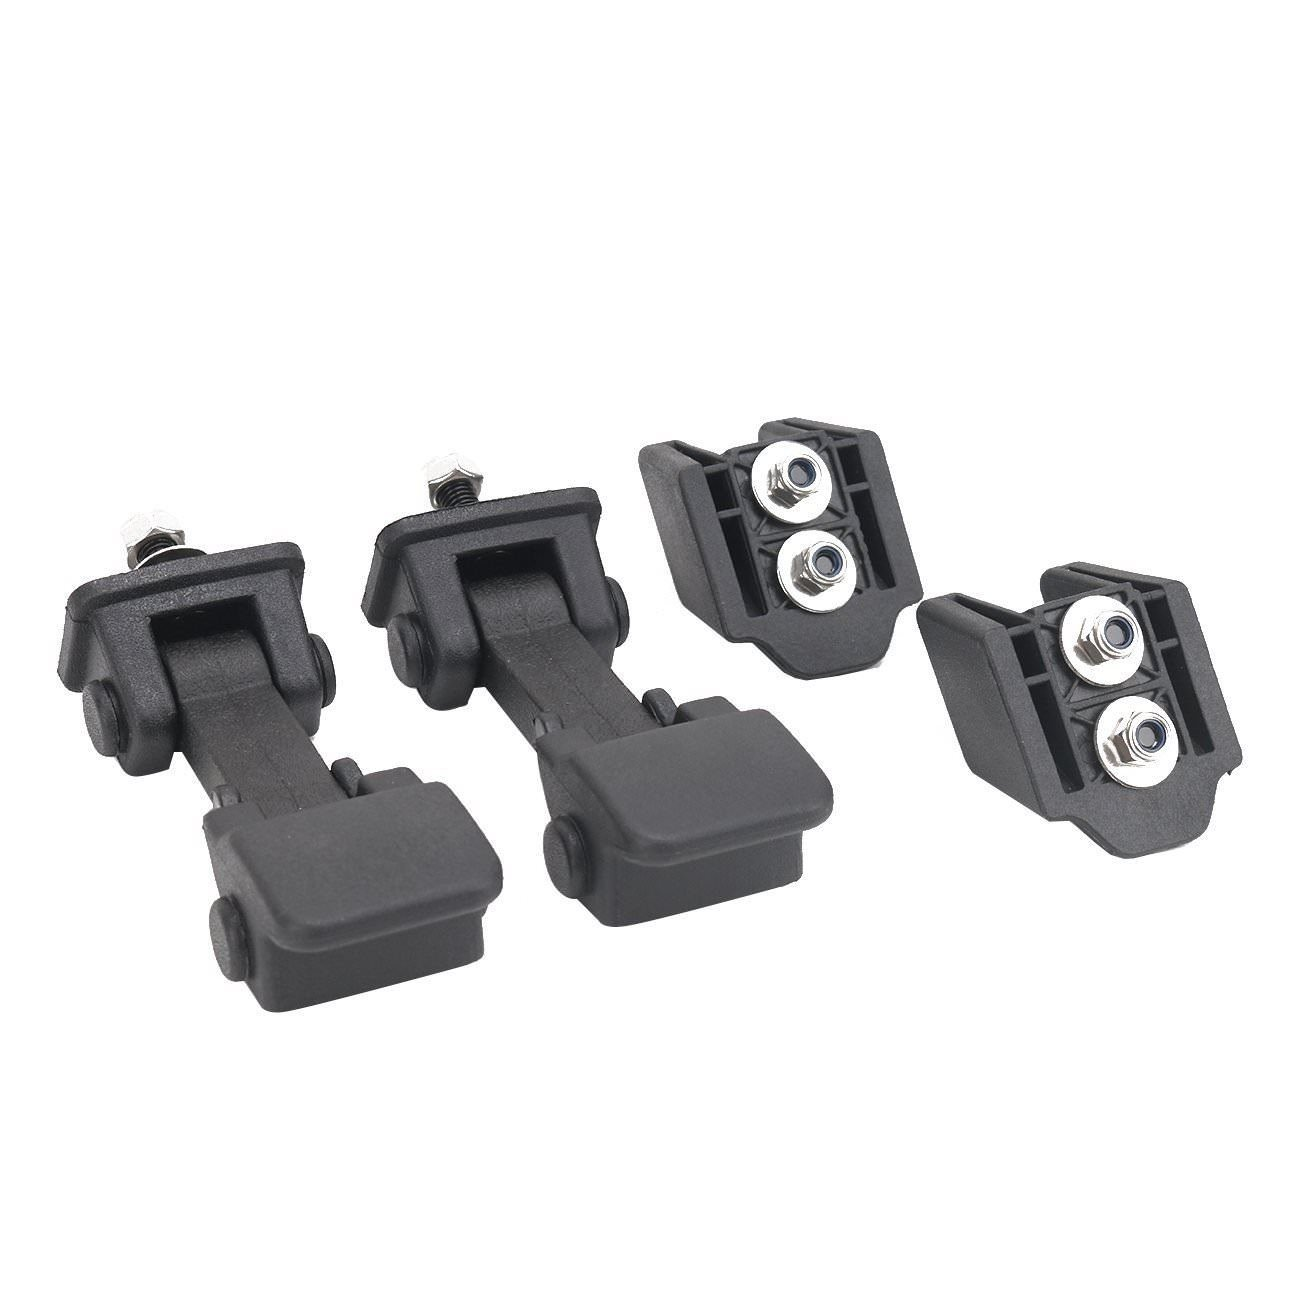 Deep Touch 1 Pair Hood Lock Latches Catch Locking Kit for Jeep Wrangler JK 2007-2016 Black